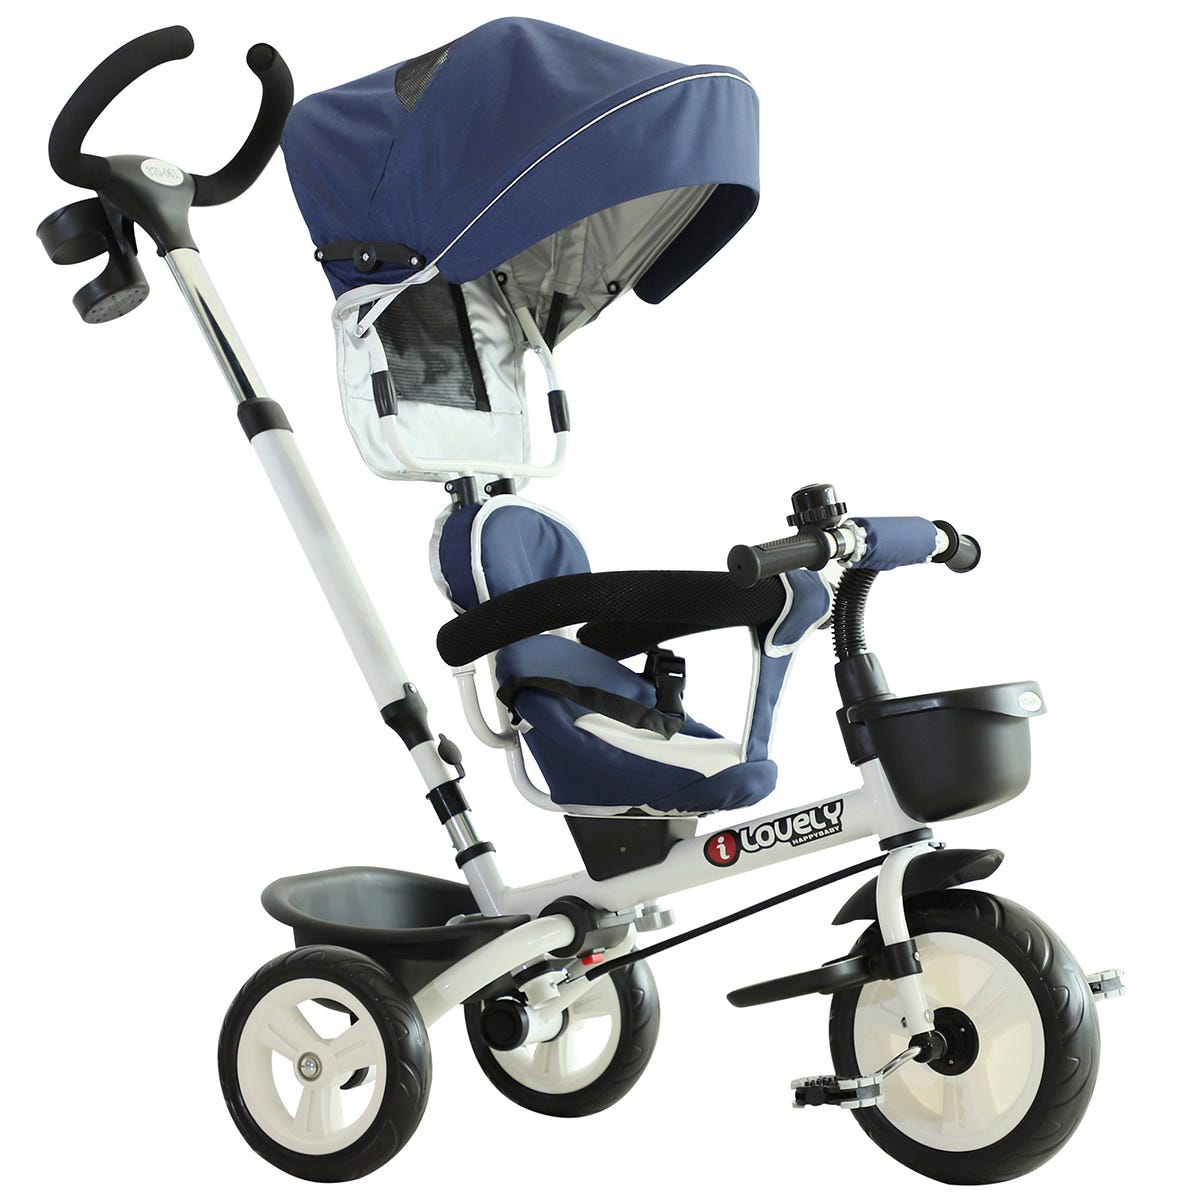 Reiten 4-in-1 Kids Tricycle & Stroller with Canopy - Blue